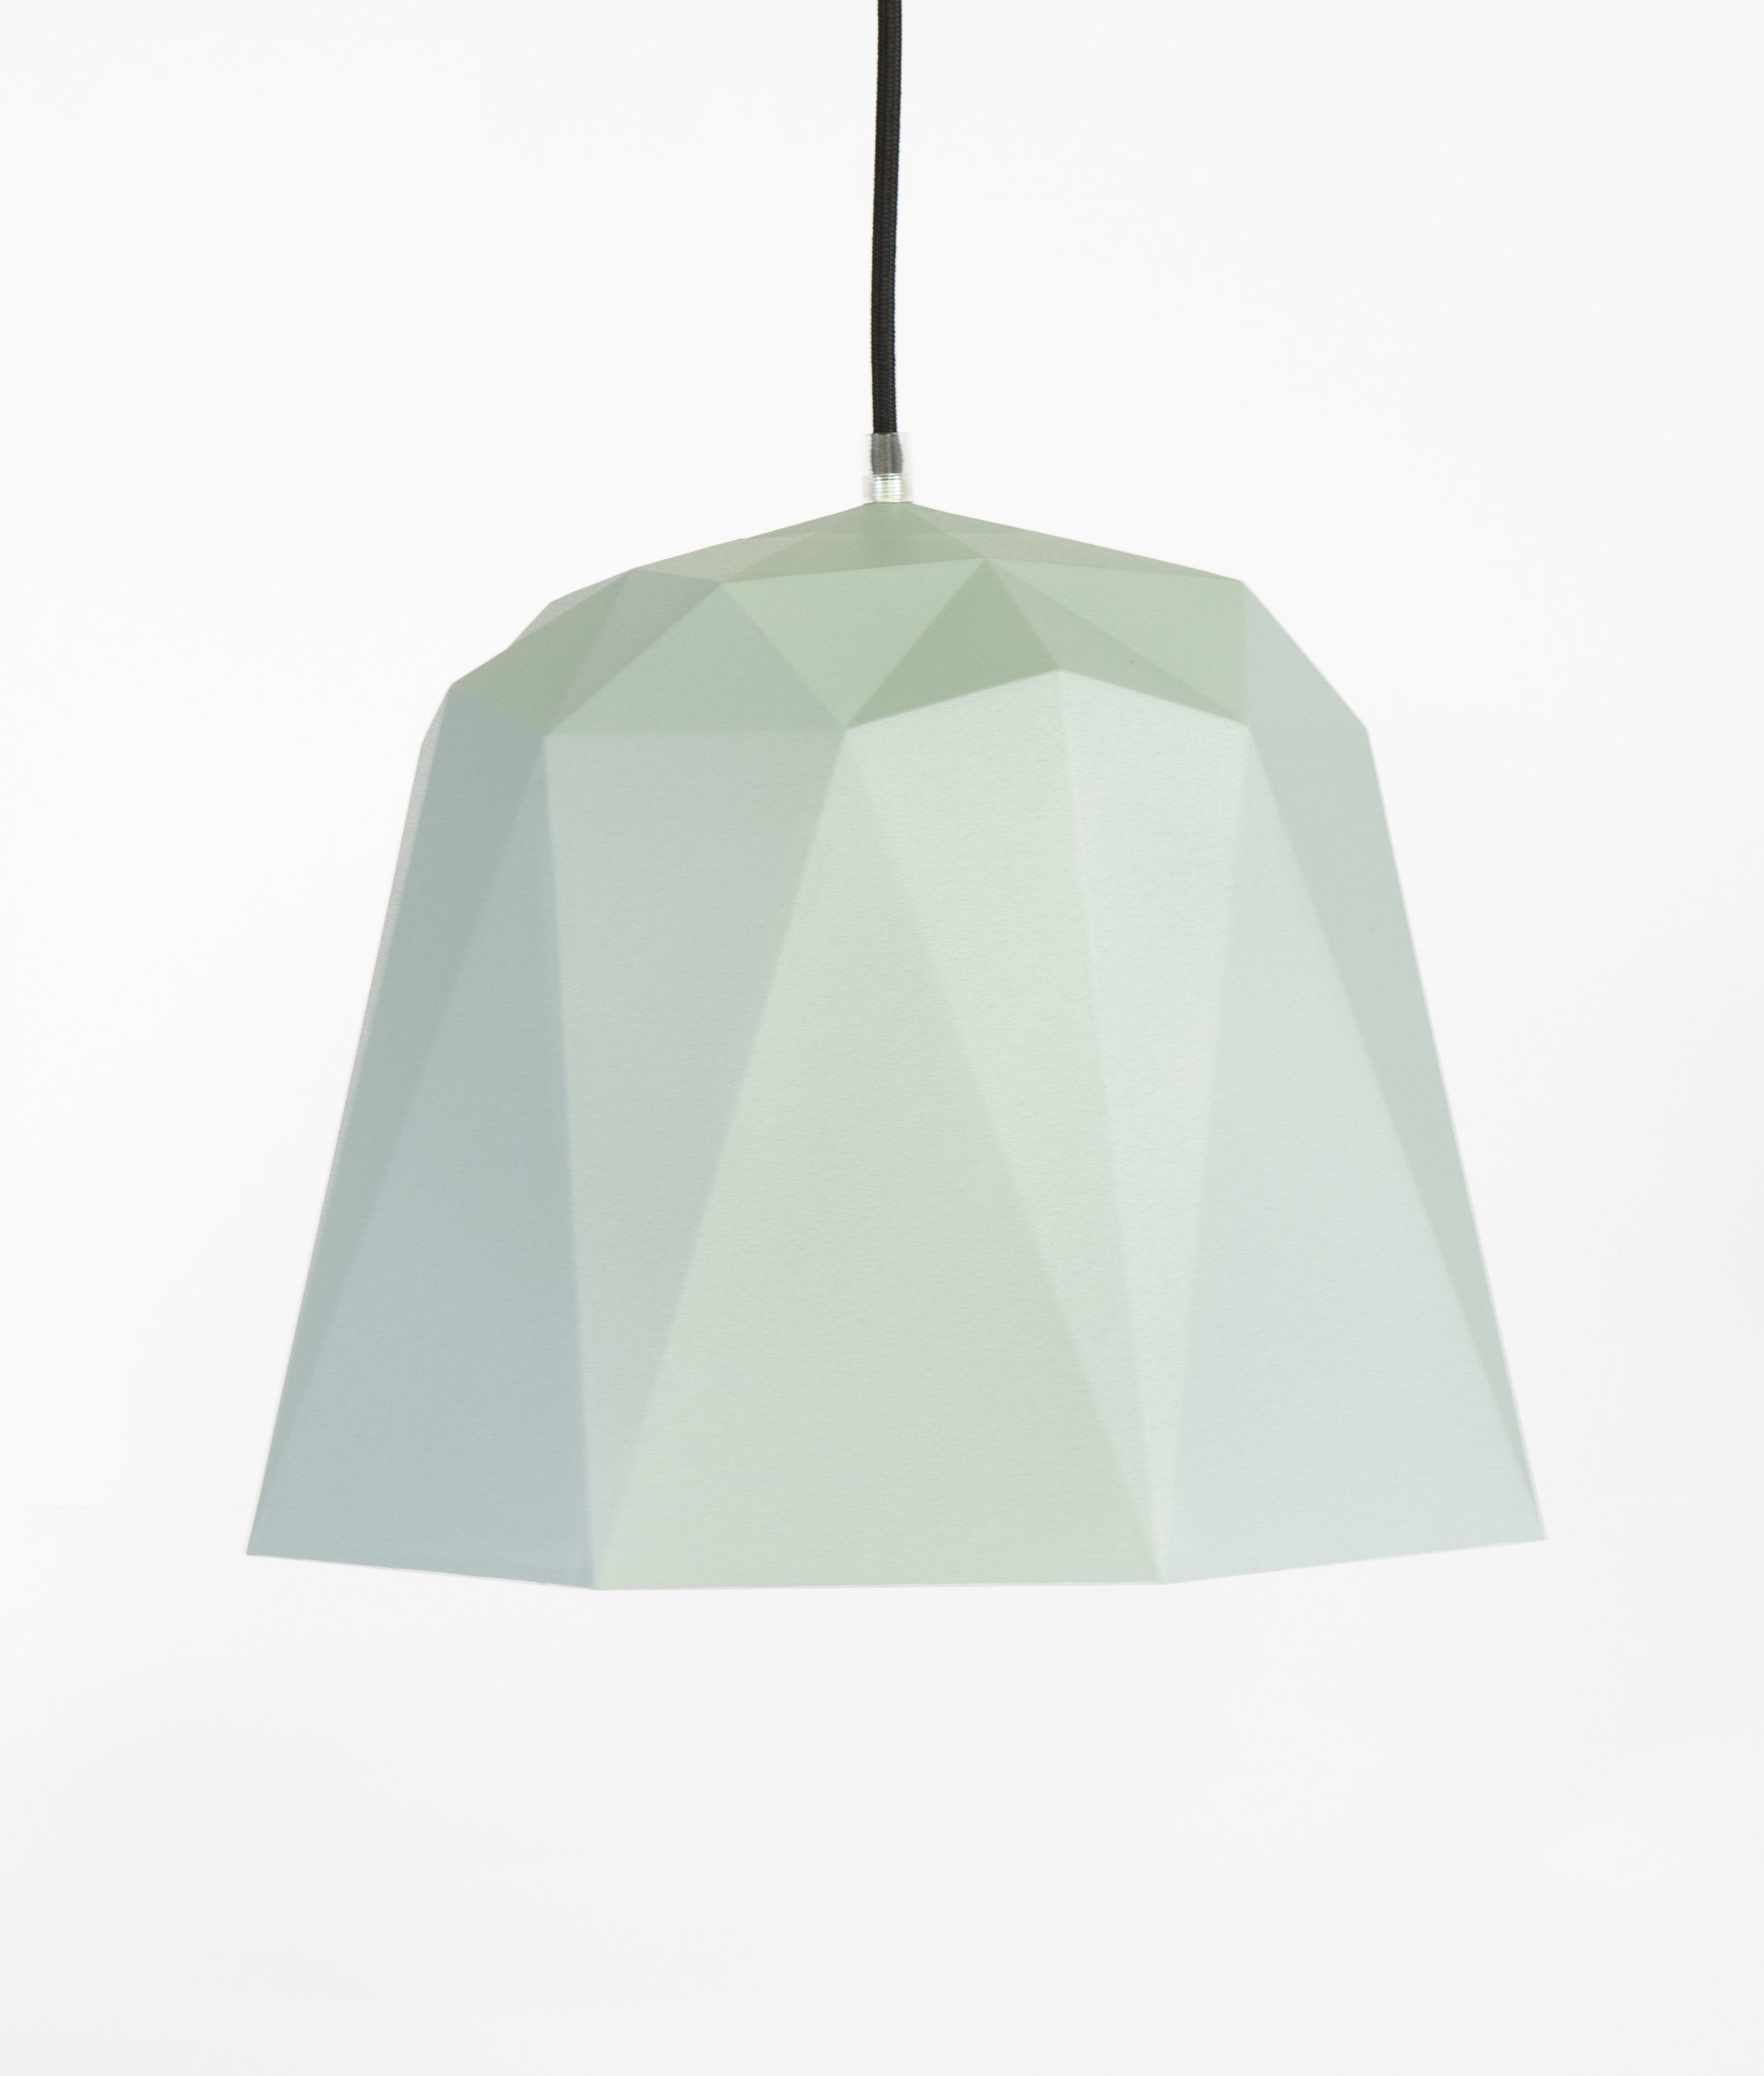 Geometric Pendant Light Osaka Grey Texture